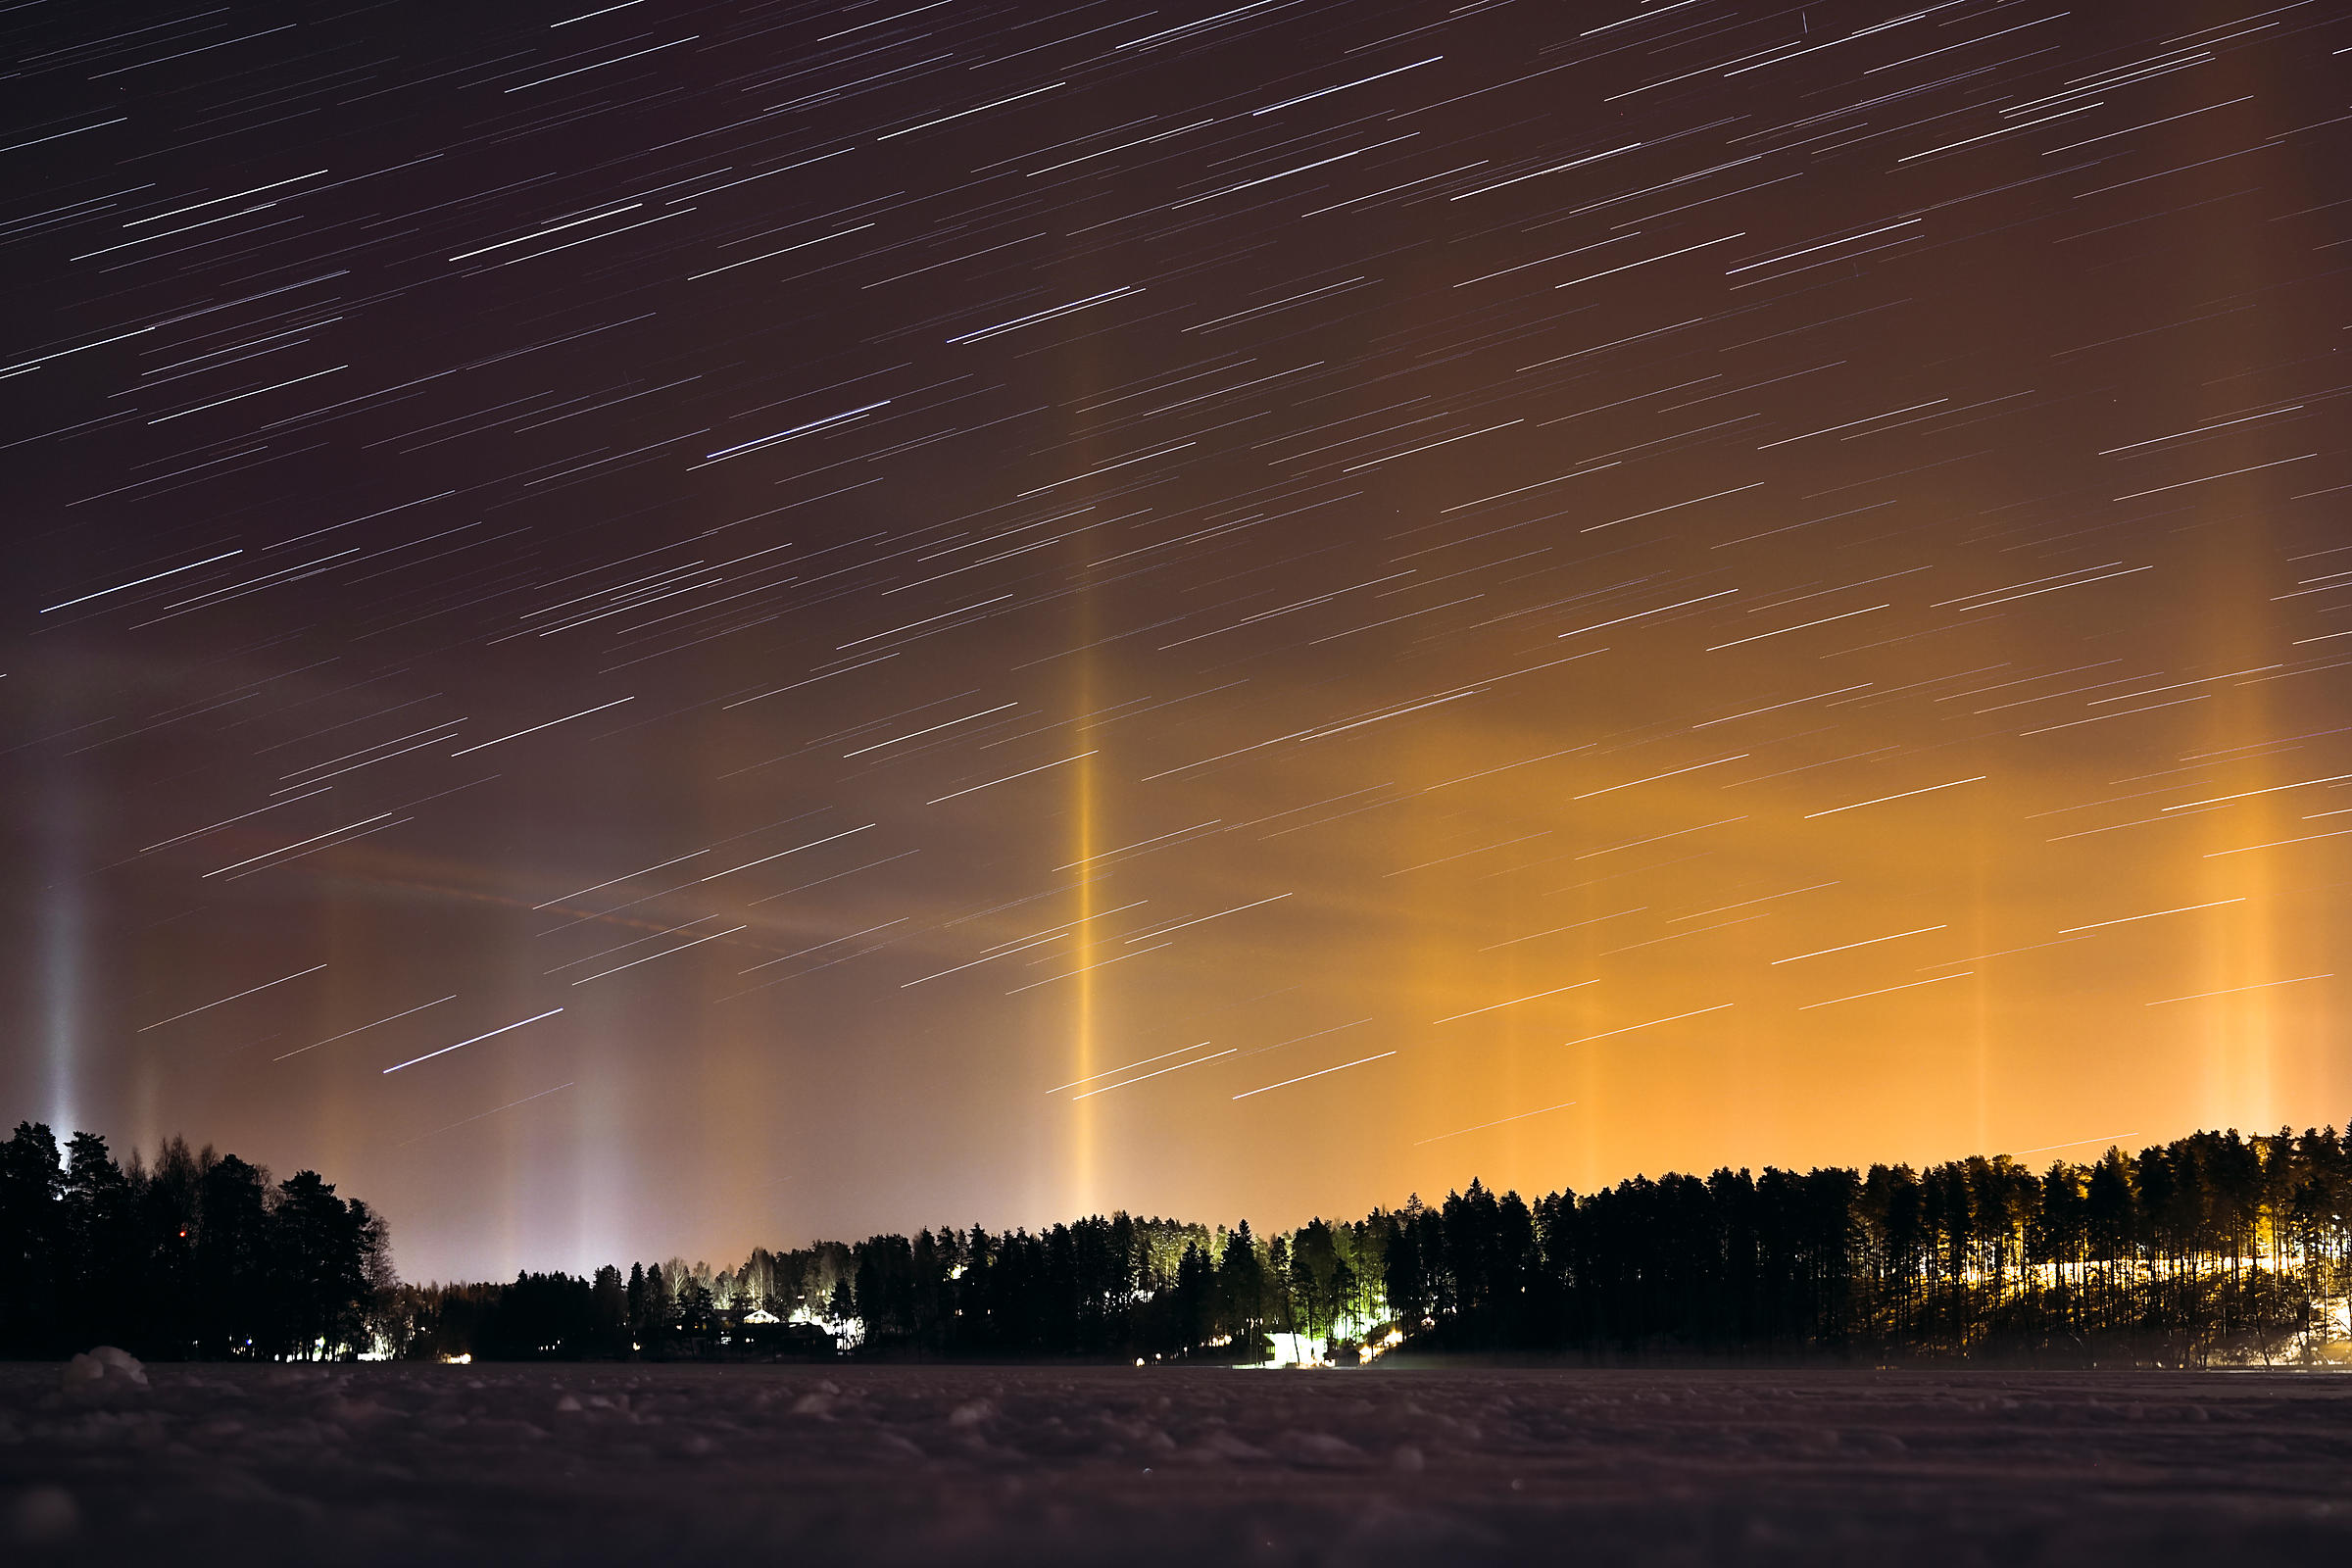 Light pillars above Southern Finland on February 22 2018.